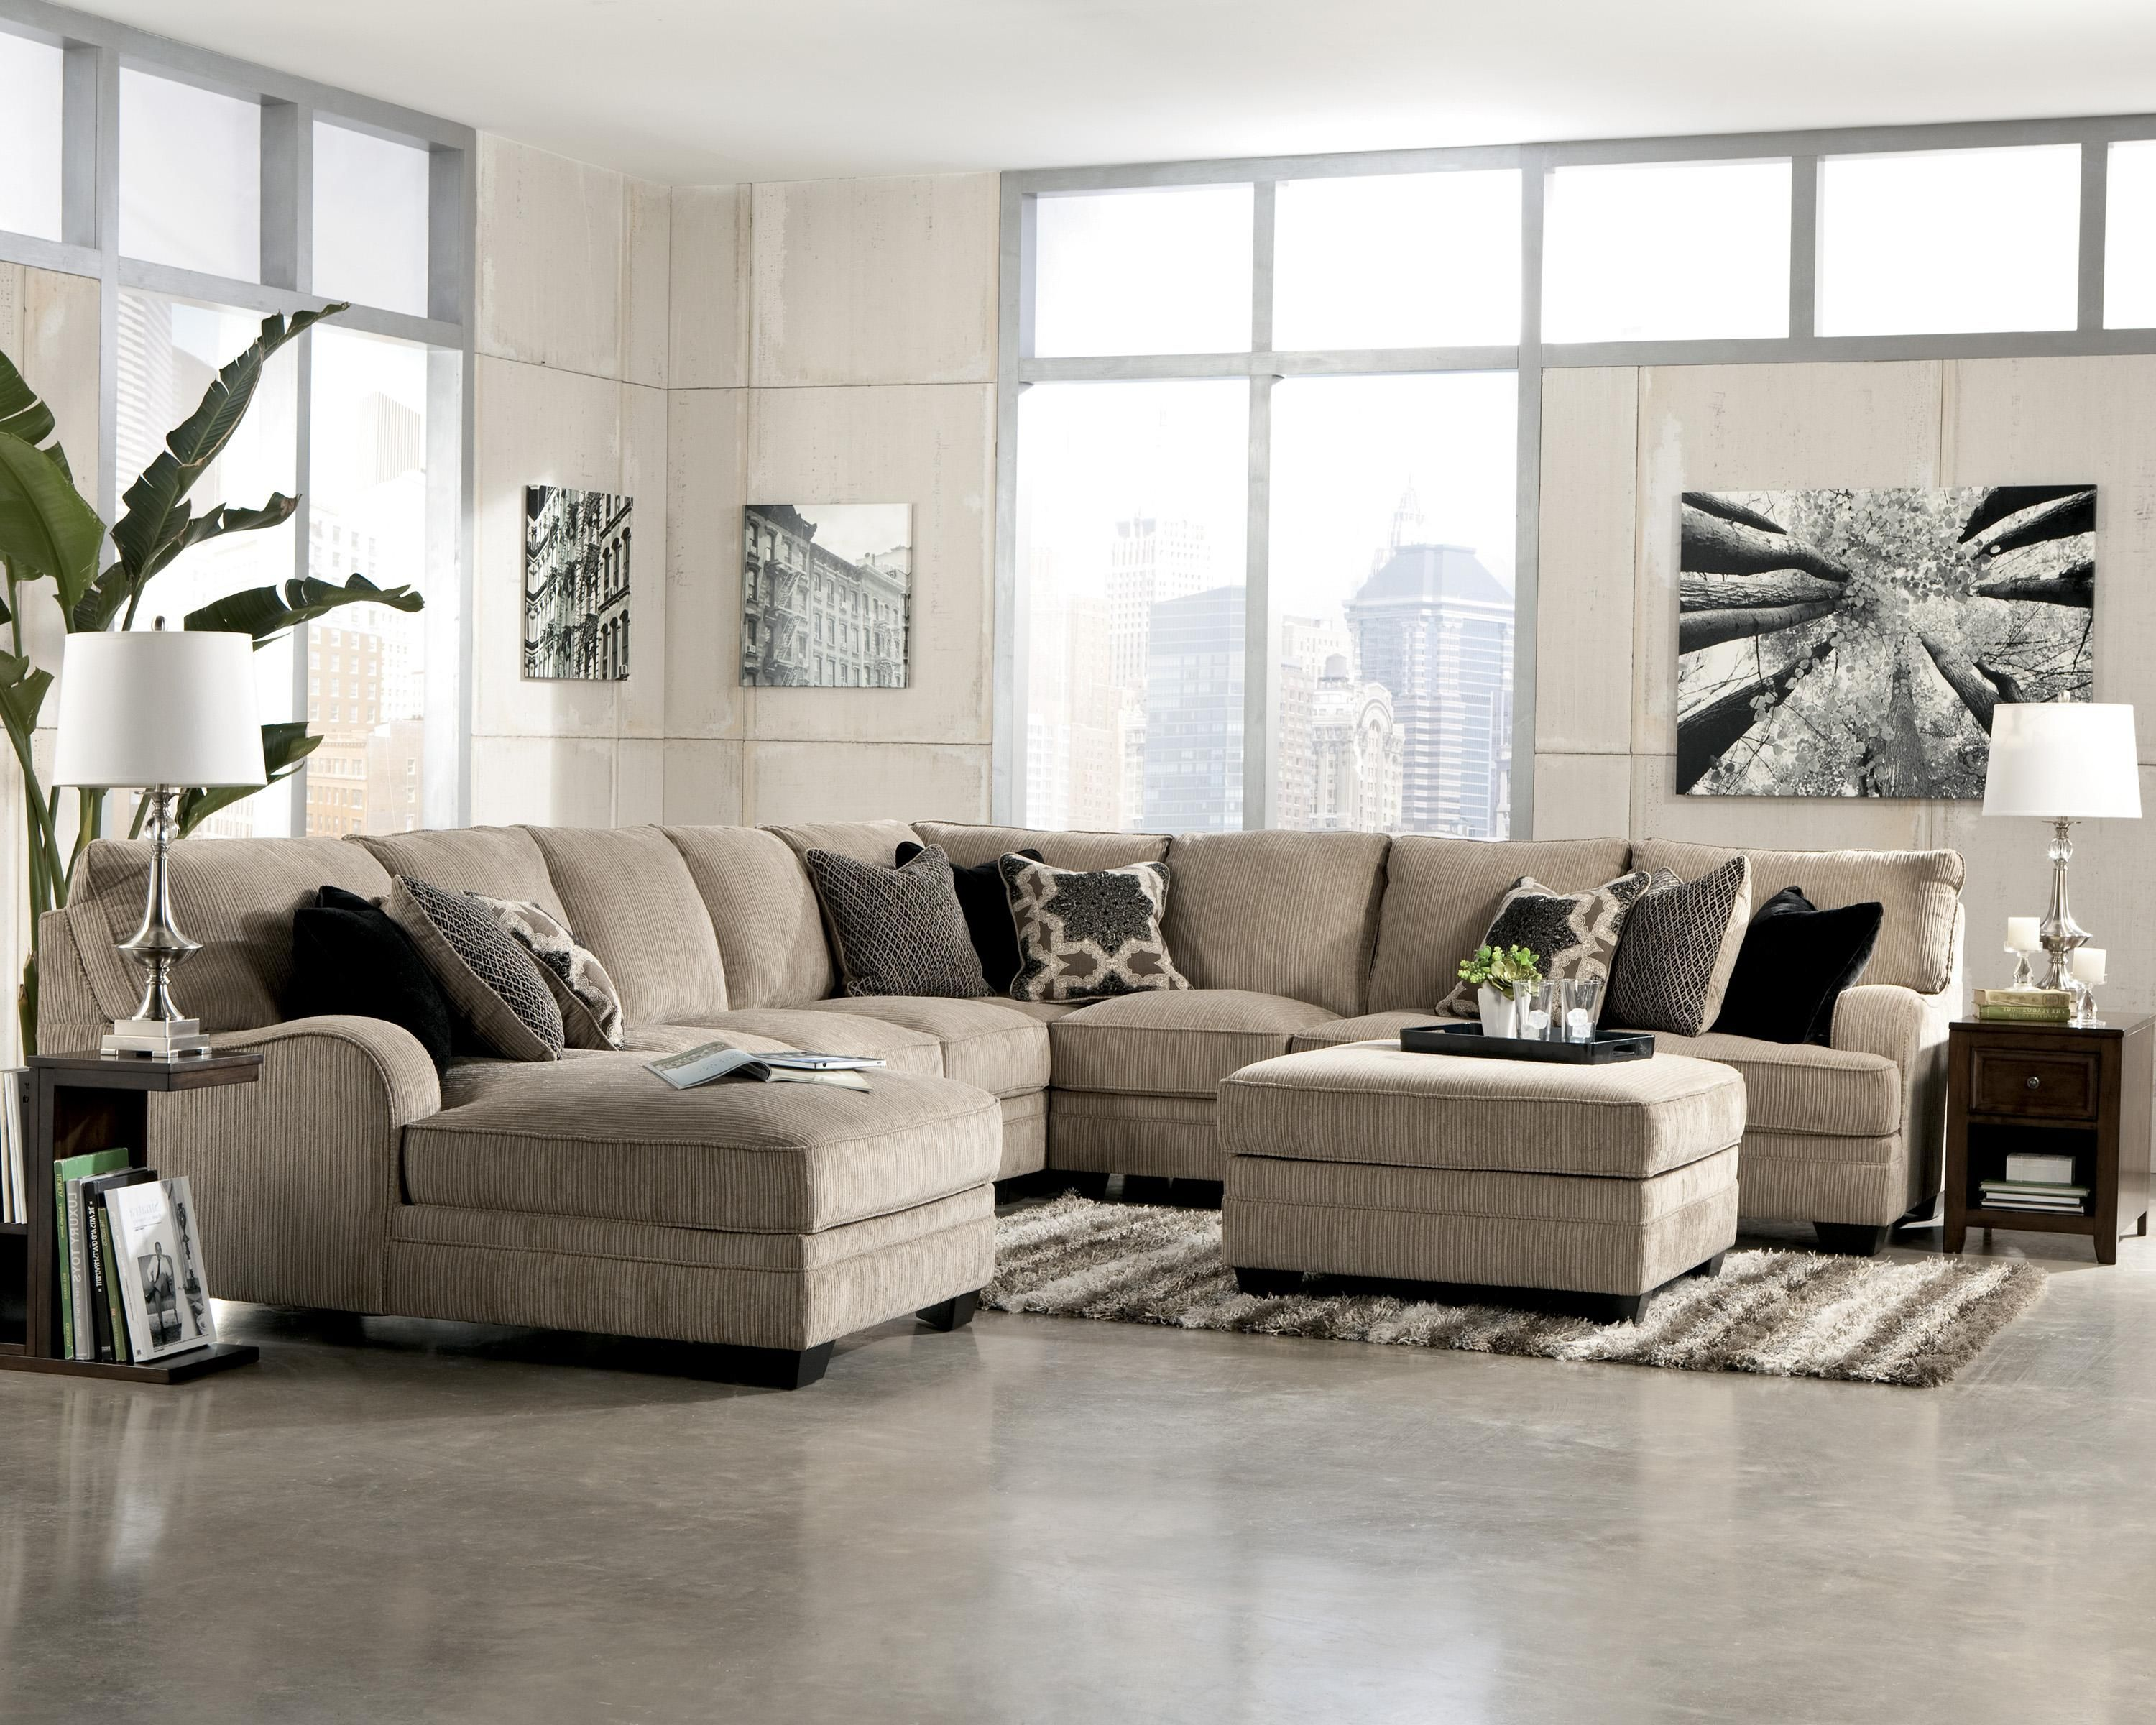 dante free with velvet tufted right facing today chaise garden shipping sofa sectional product button home overstock